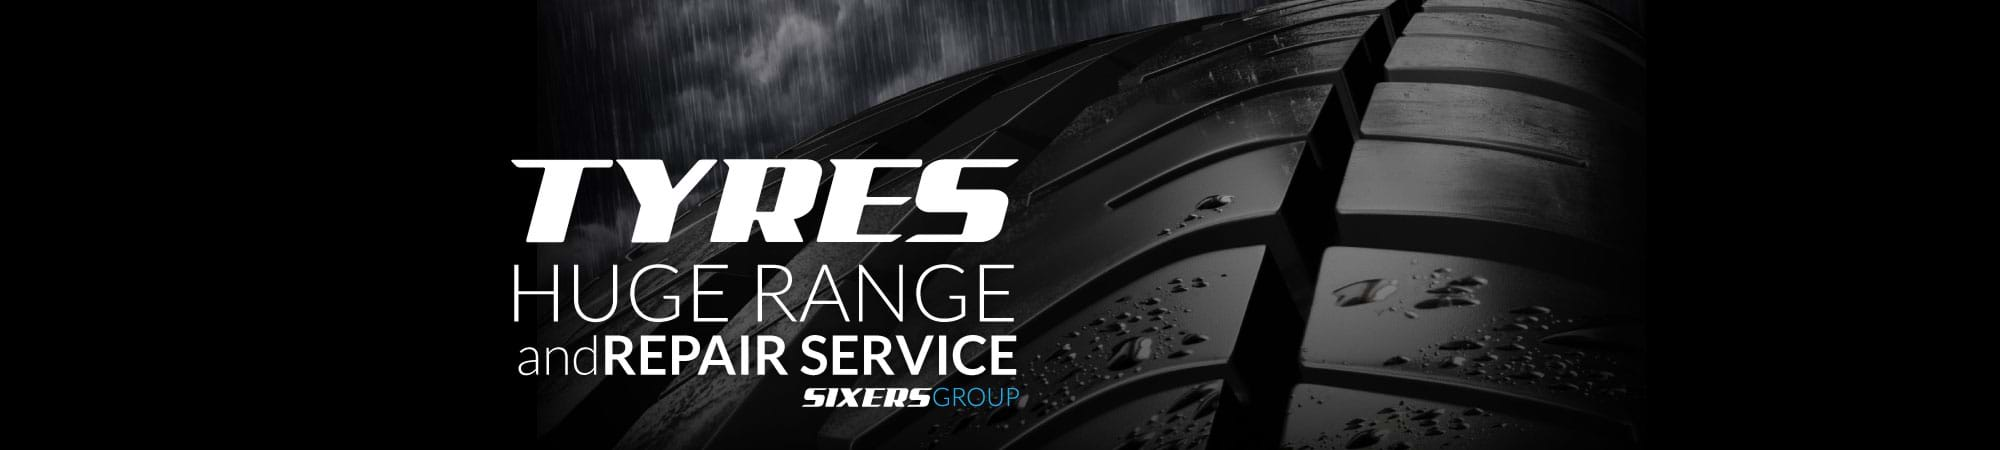 Sixers Group Tyres, Huge range and repair service